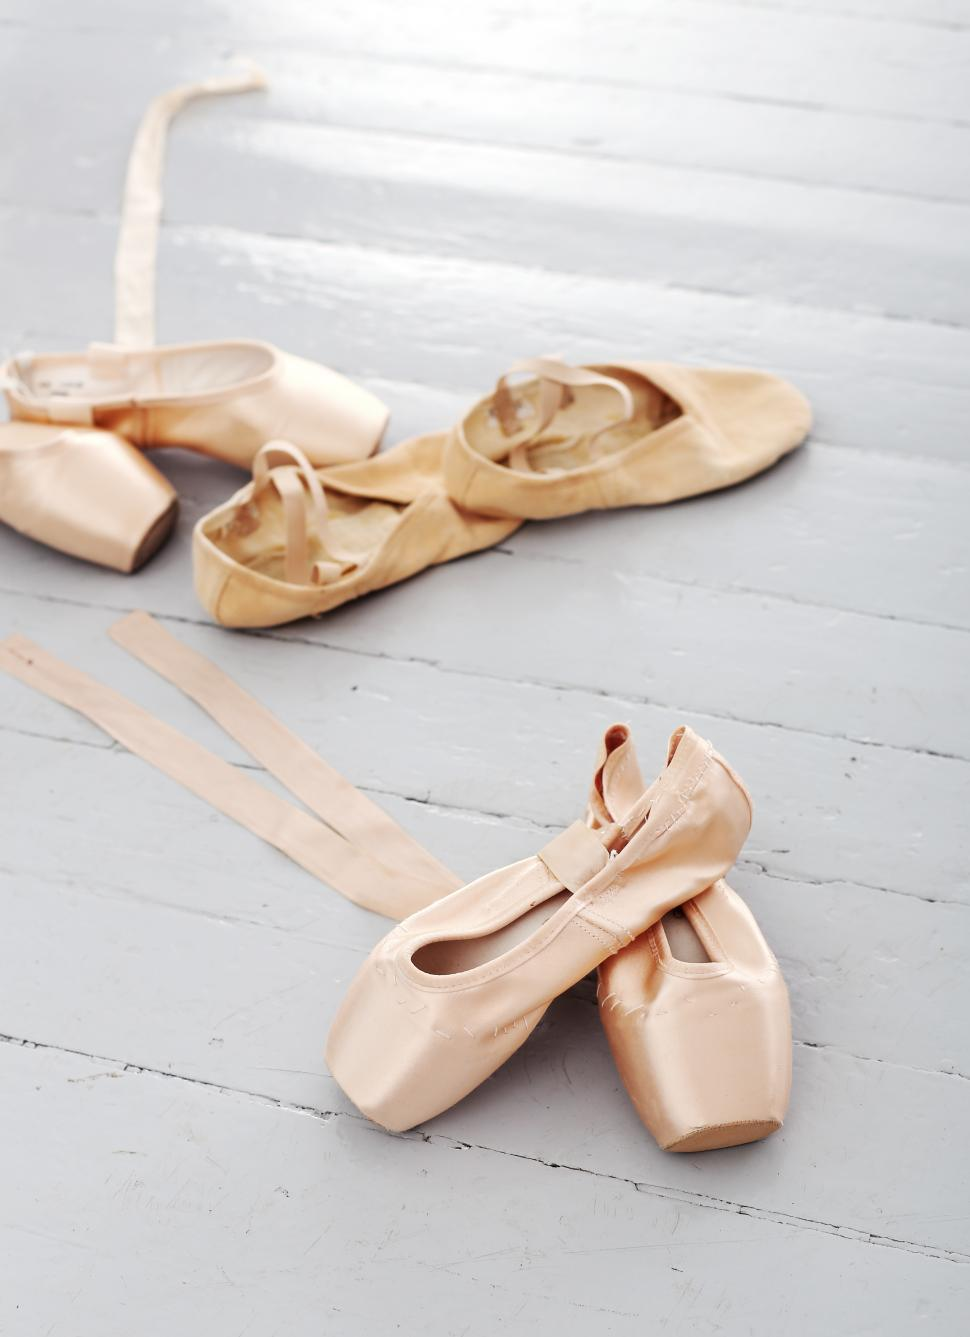 Download Free Stock HD Photo of Ballet shoes lay alone on the floor Online